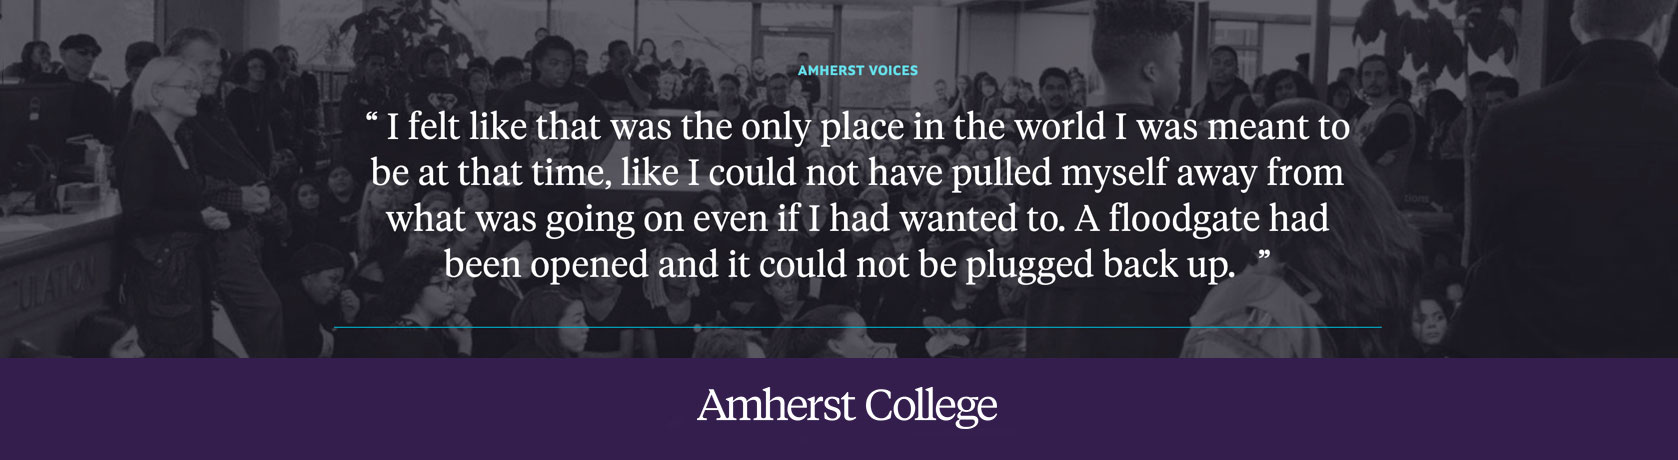 Quote about the Amherst Uprising